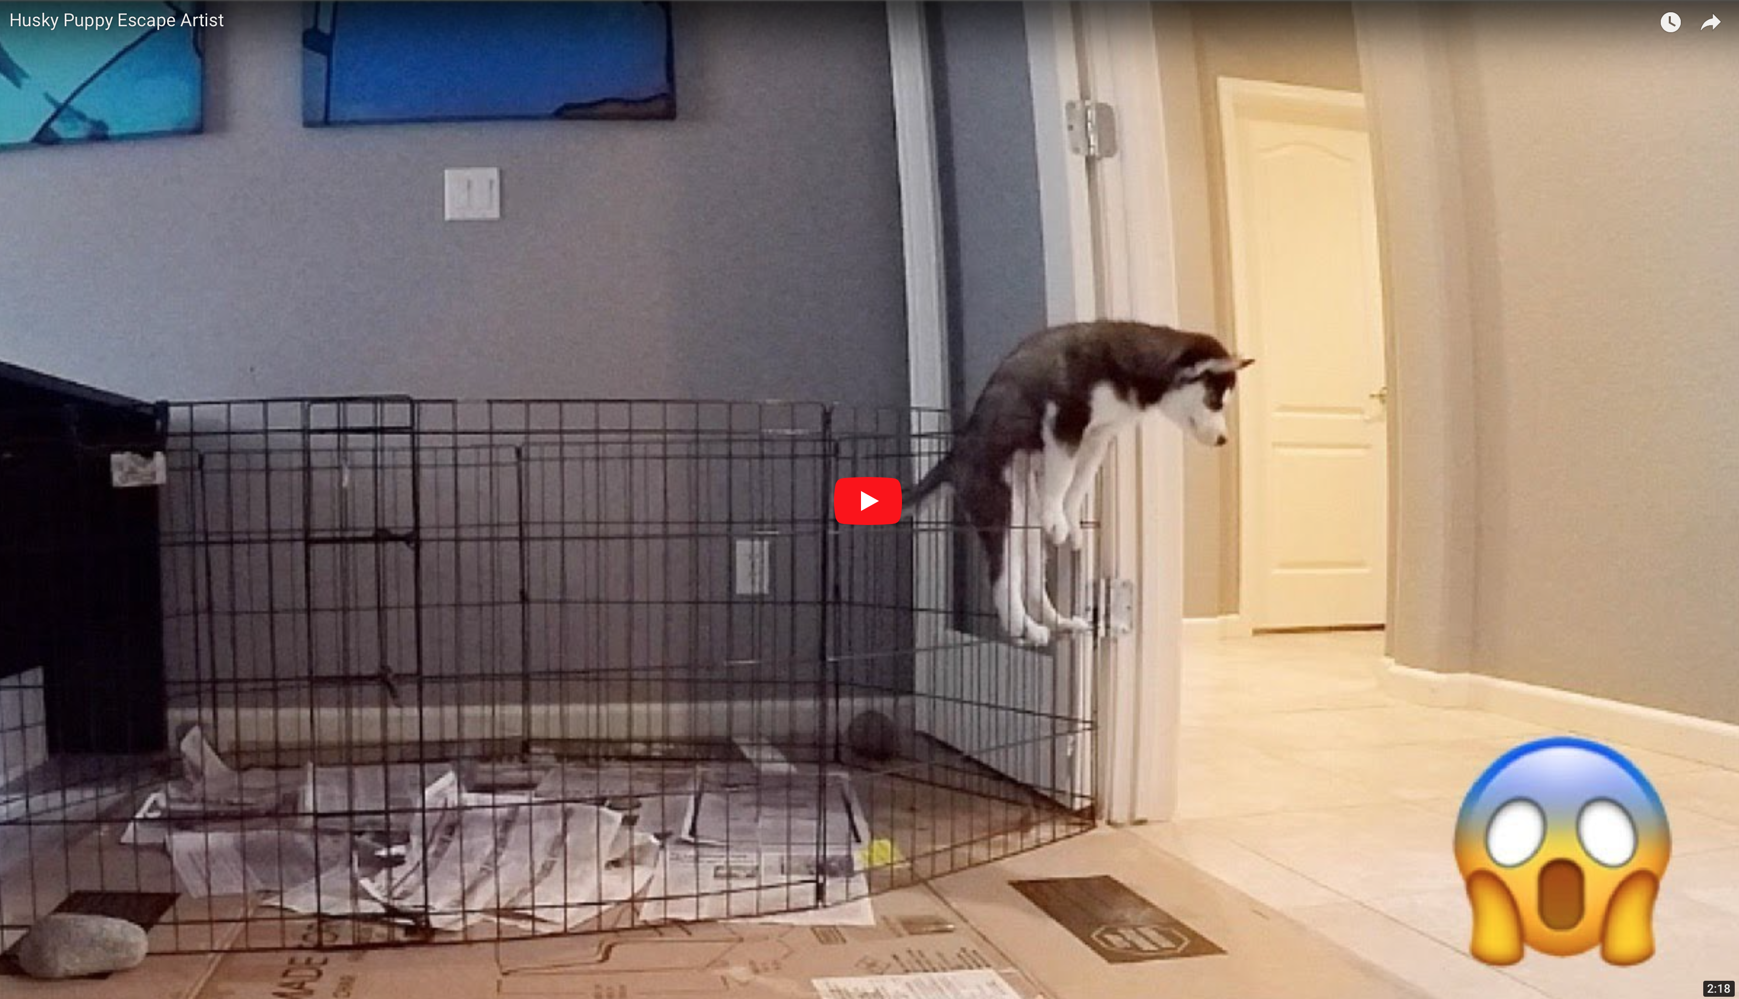 Husky Puppy Escape Artist at 8 weeks old...